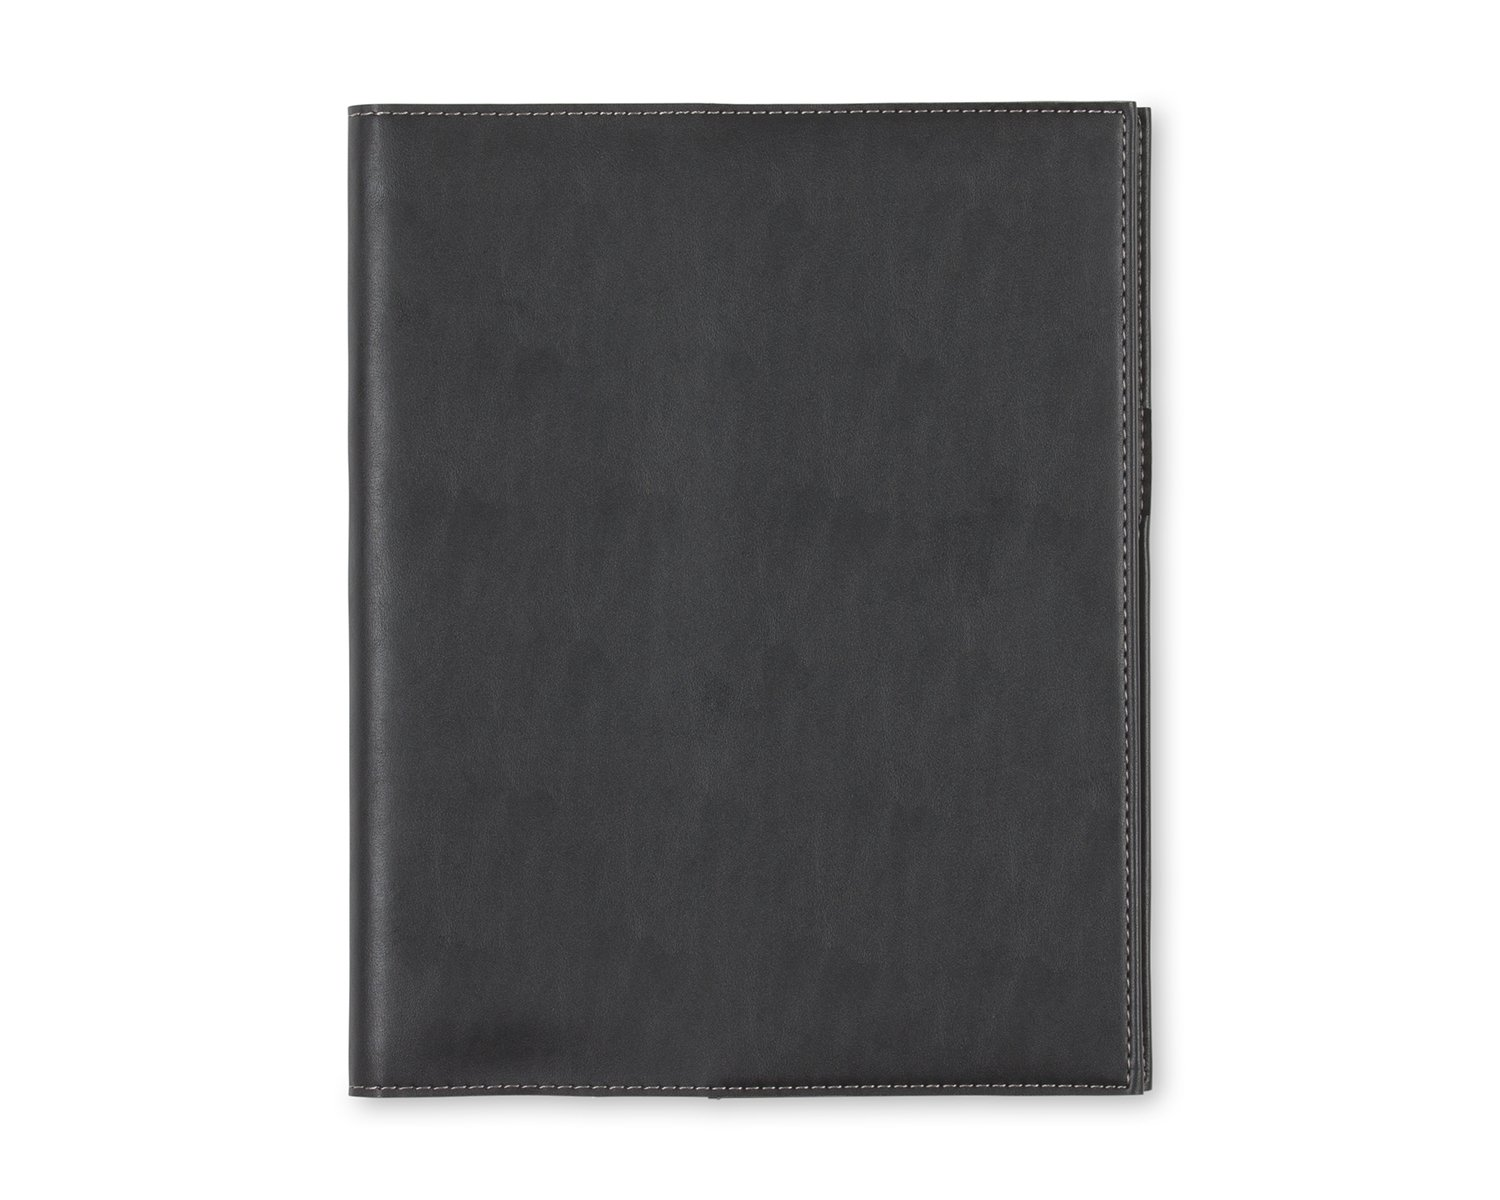 Blue Sky Professional Notebook, Leather-Like Textured Cover, Twin-Wire Binding, 8.5'' x 11'', Black by Blue Sky (Image #1)